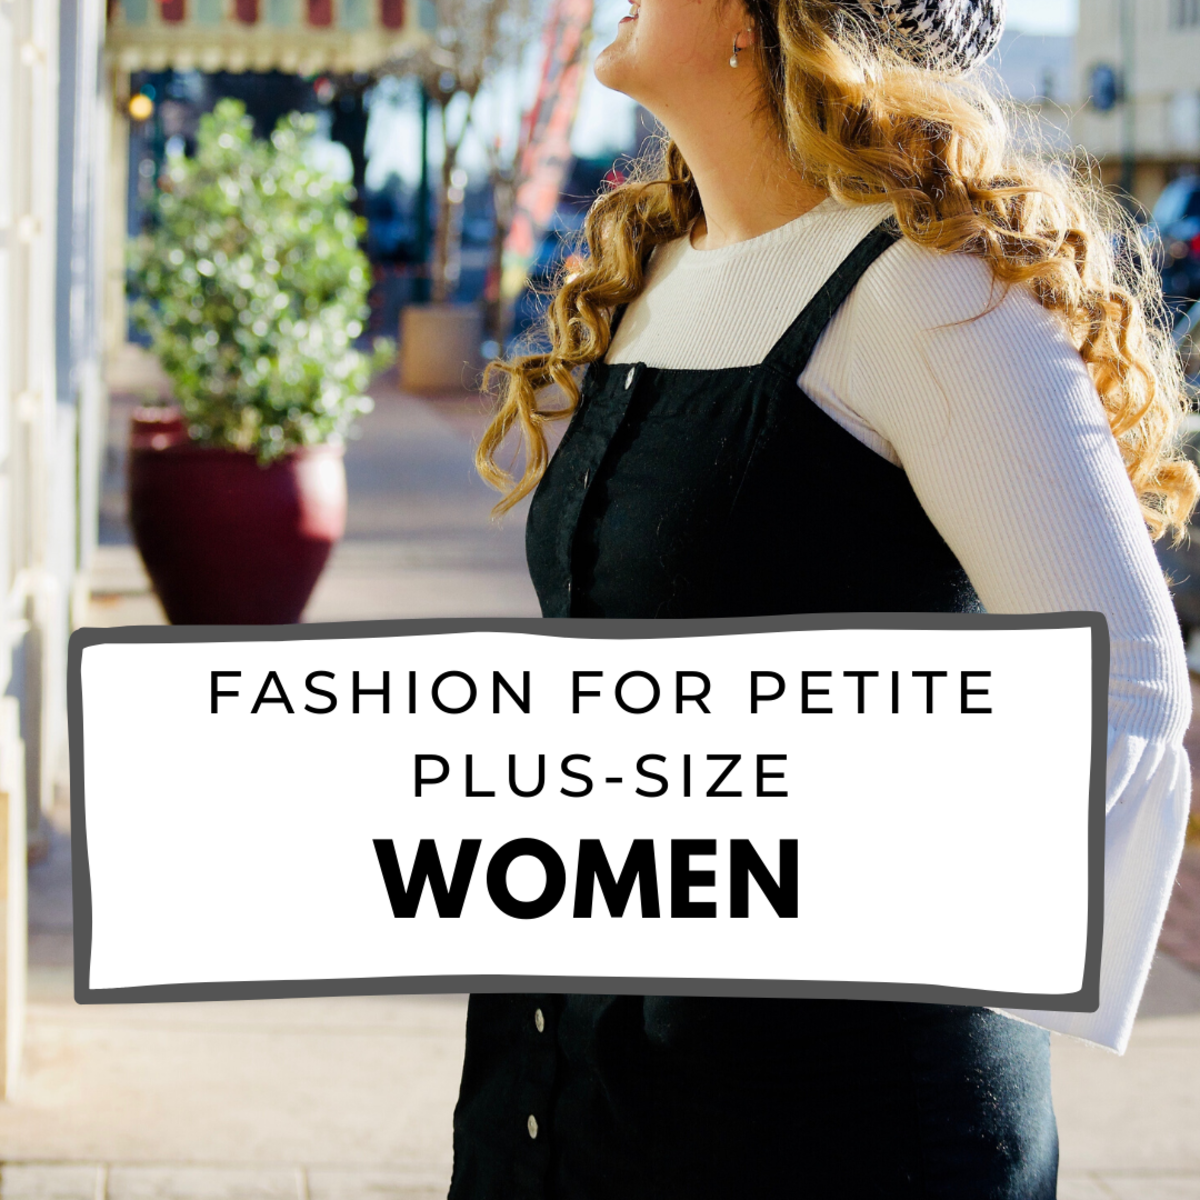 Petite and Plus: Fashion That Works With Your Shape